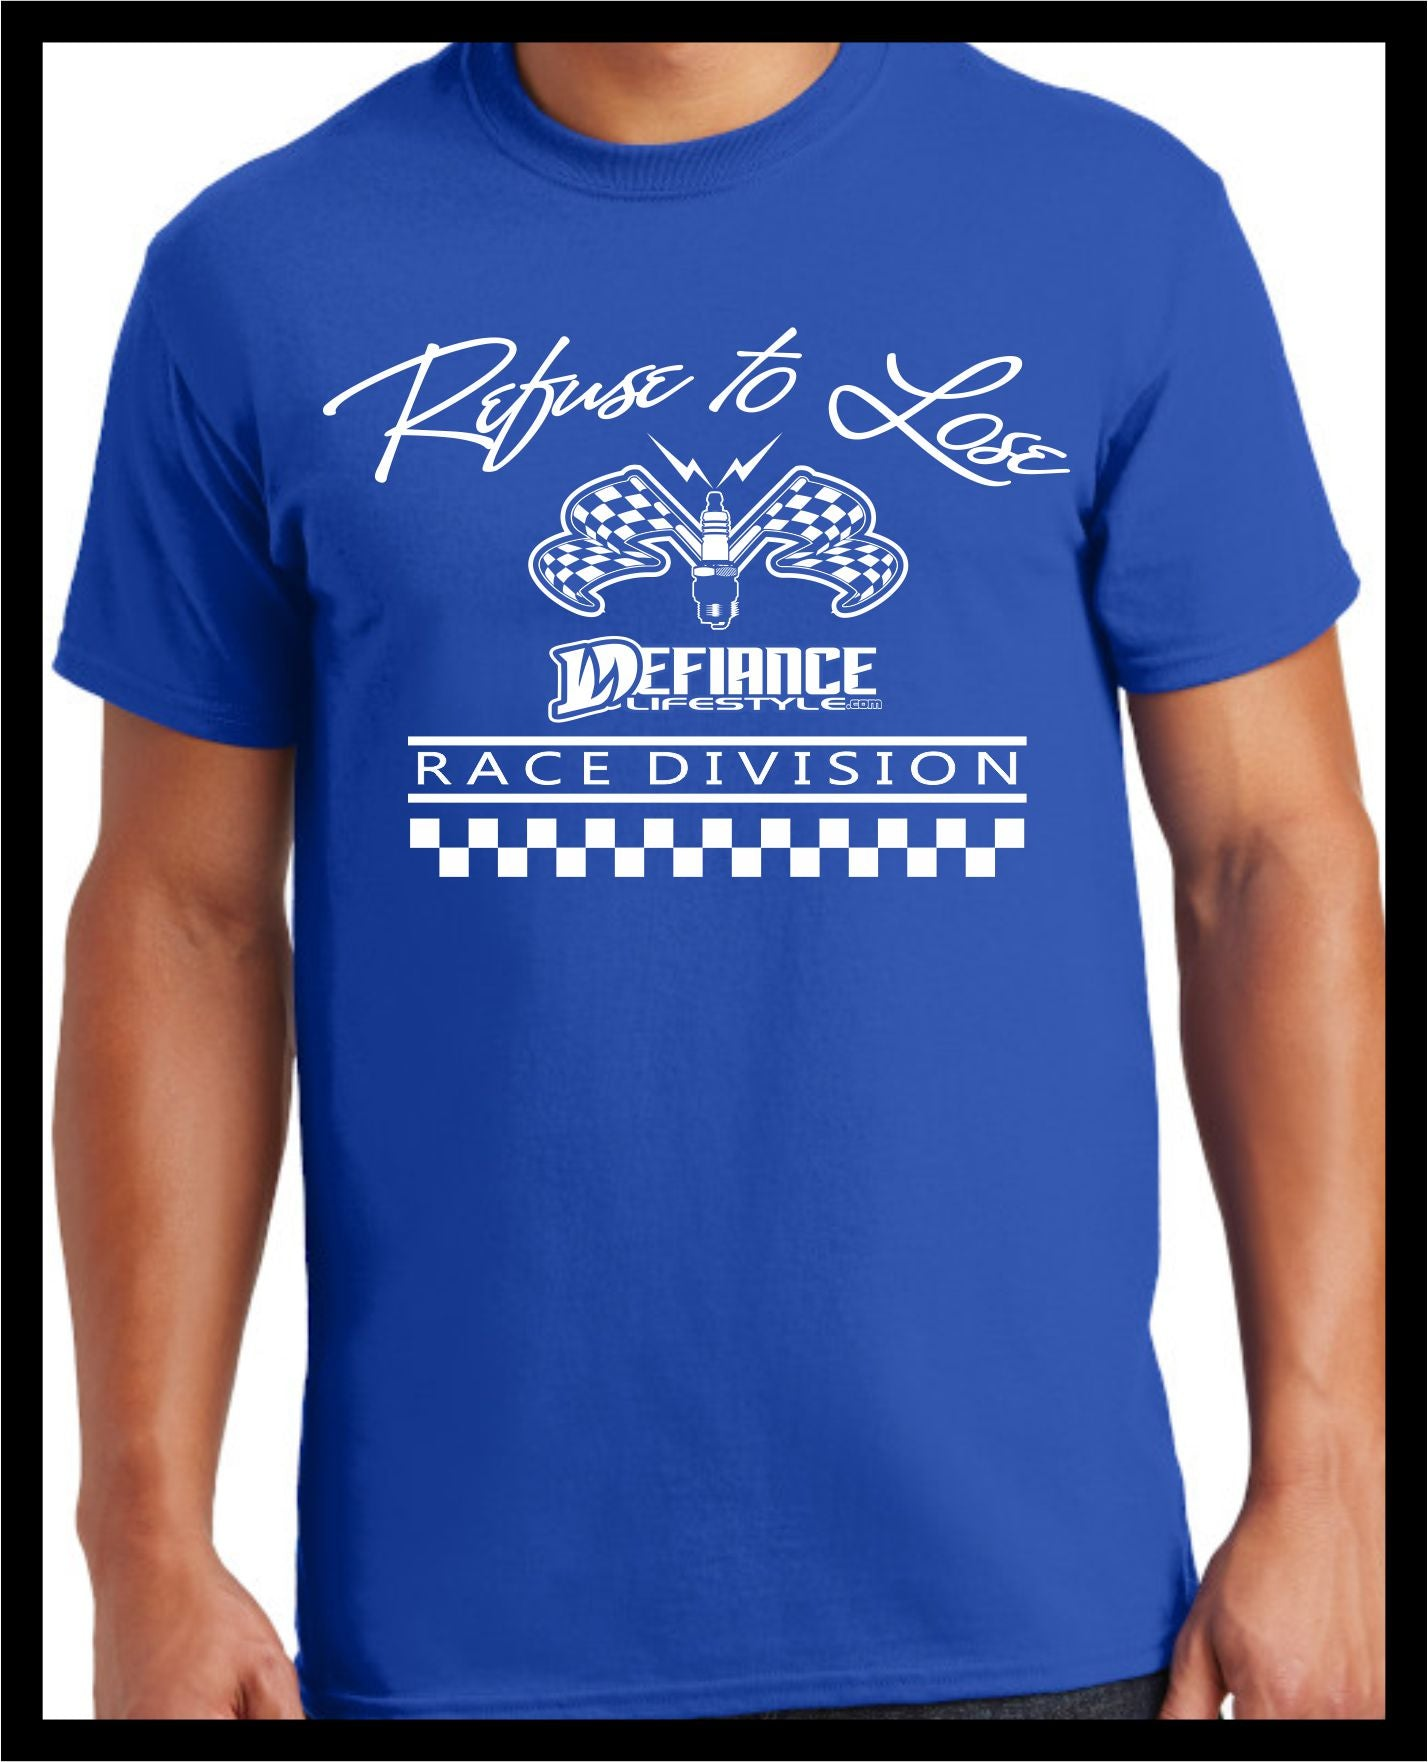 Refuse Spark T-Shirt - blue - Defiance Lifestyle, Race Apparel - Casual to Custom